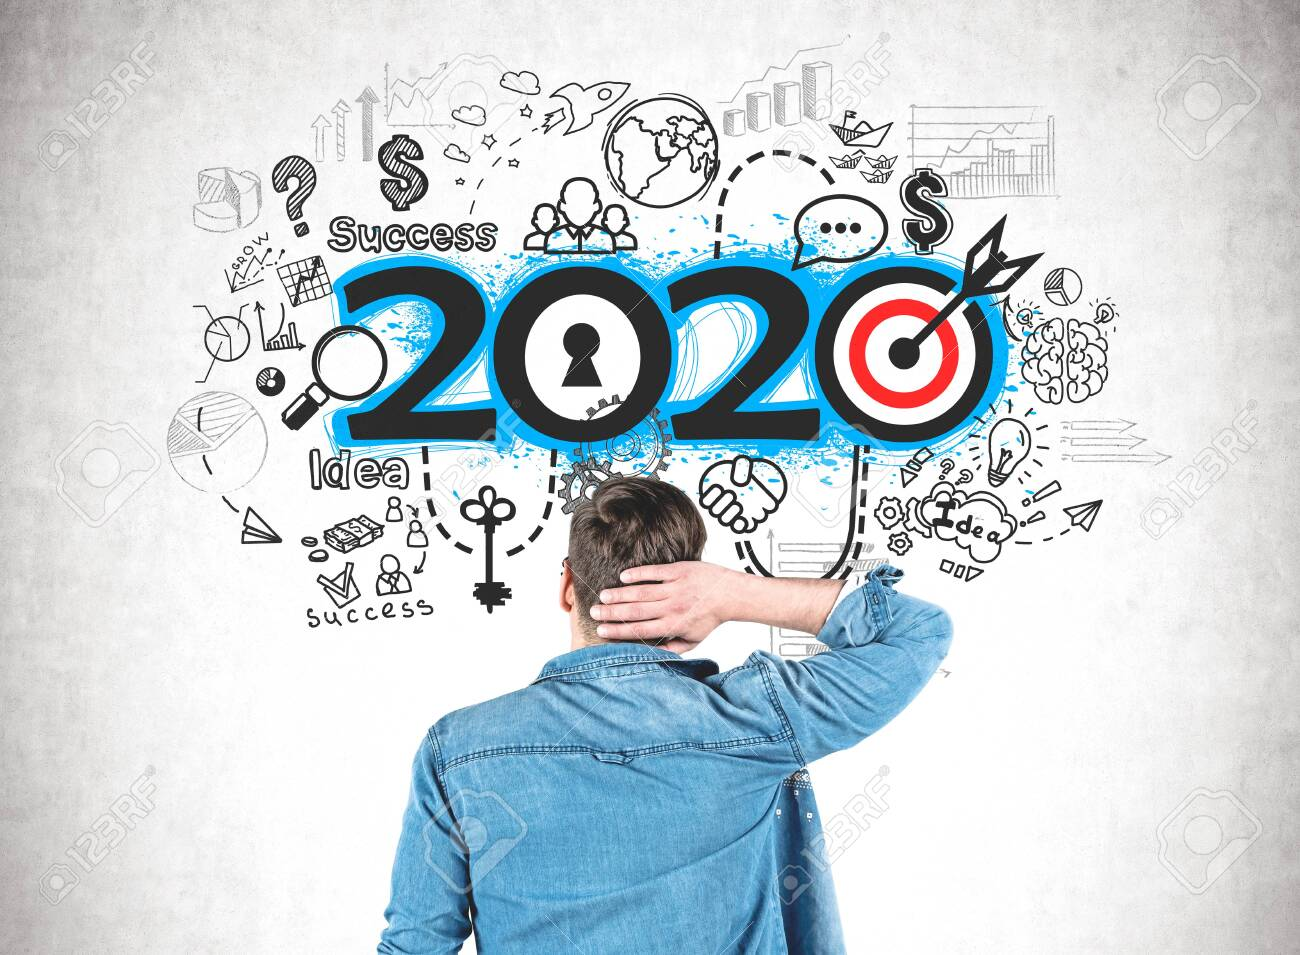 Rear view of confused young man in jeans shirt looking at 2020 strategy sketch drawn on concrete wall. Concept of planning and new year resolutions - 133308502